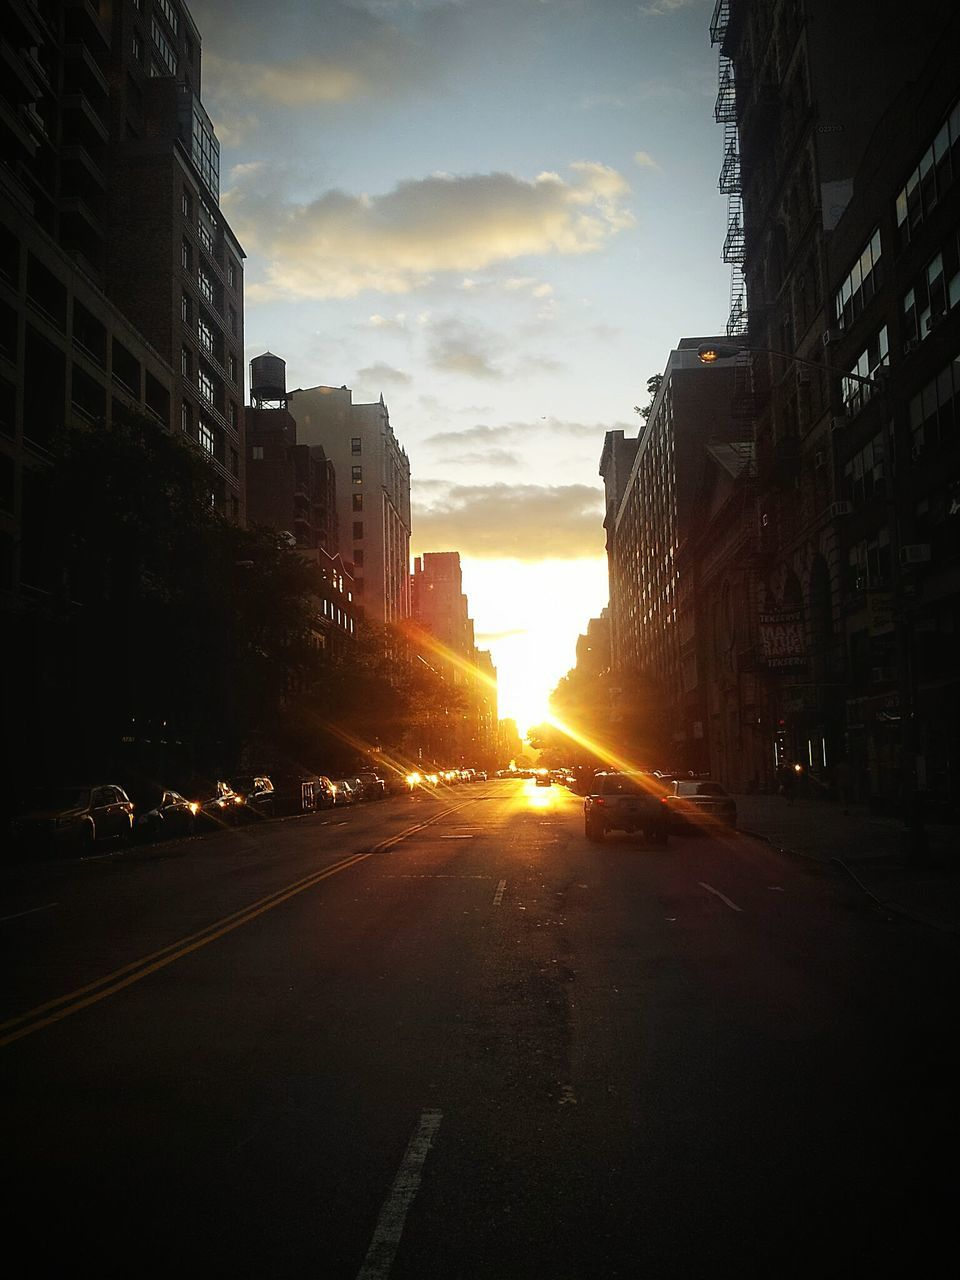 sunset, architecture, building exterior, city, built structure, sky, road, street, car, sun, transportation, sunlight, outdoors, the way forward, skyscraper, no people, cityscape, day